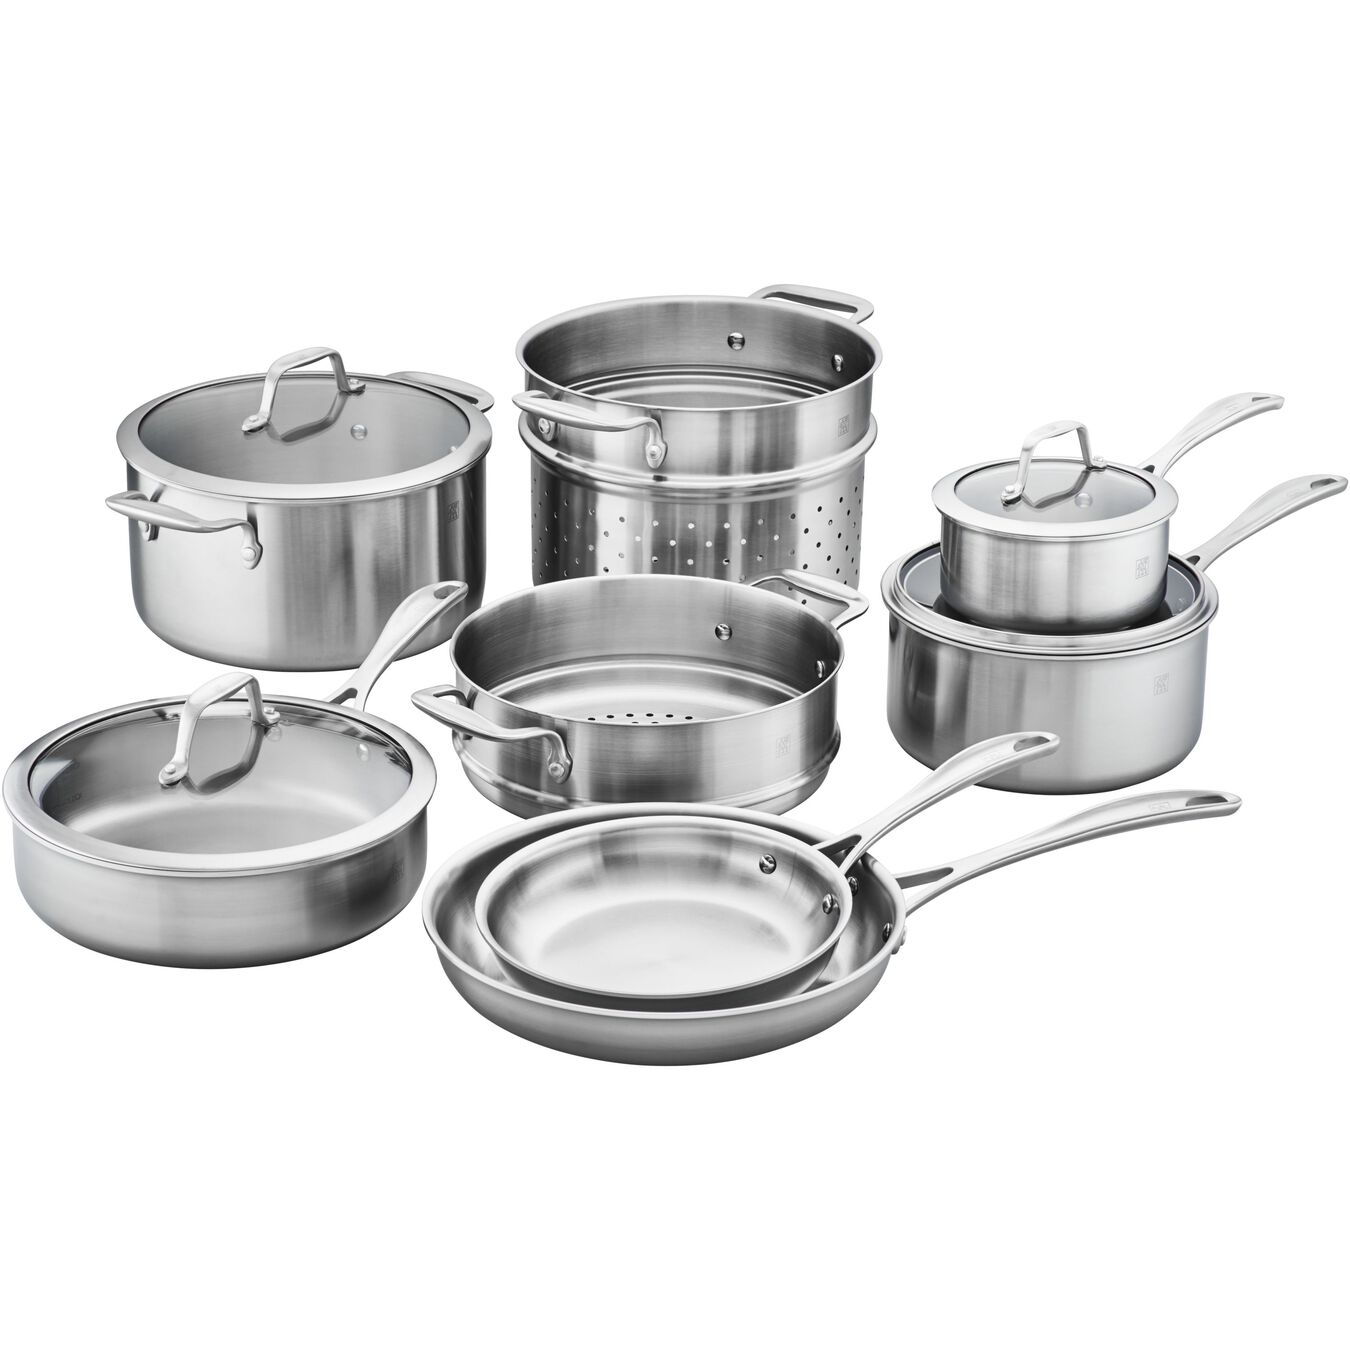 12-pc, 18/10 Stainless Steel, Pots and pans set,,large 1